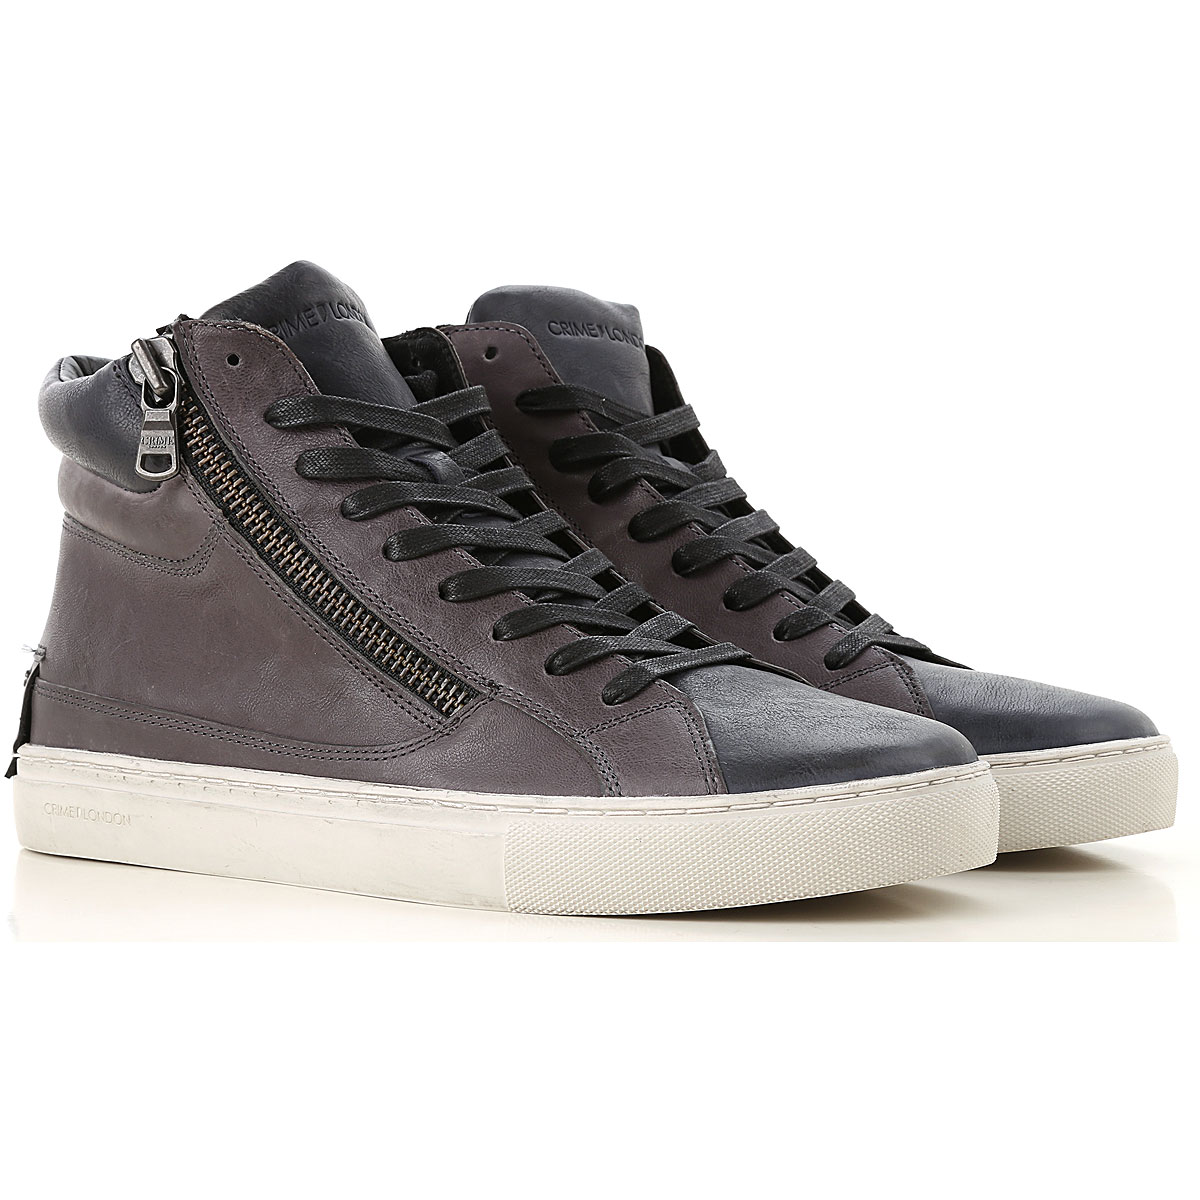 Image of Crime Sneakers for Men, Anthracite Grey, Leather, 2017, 10 10.5 7.5 8 9